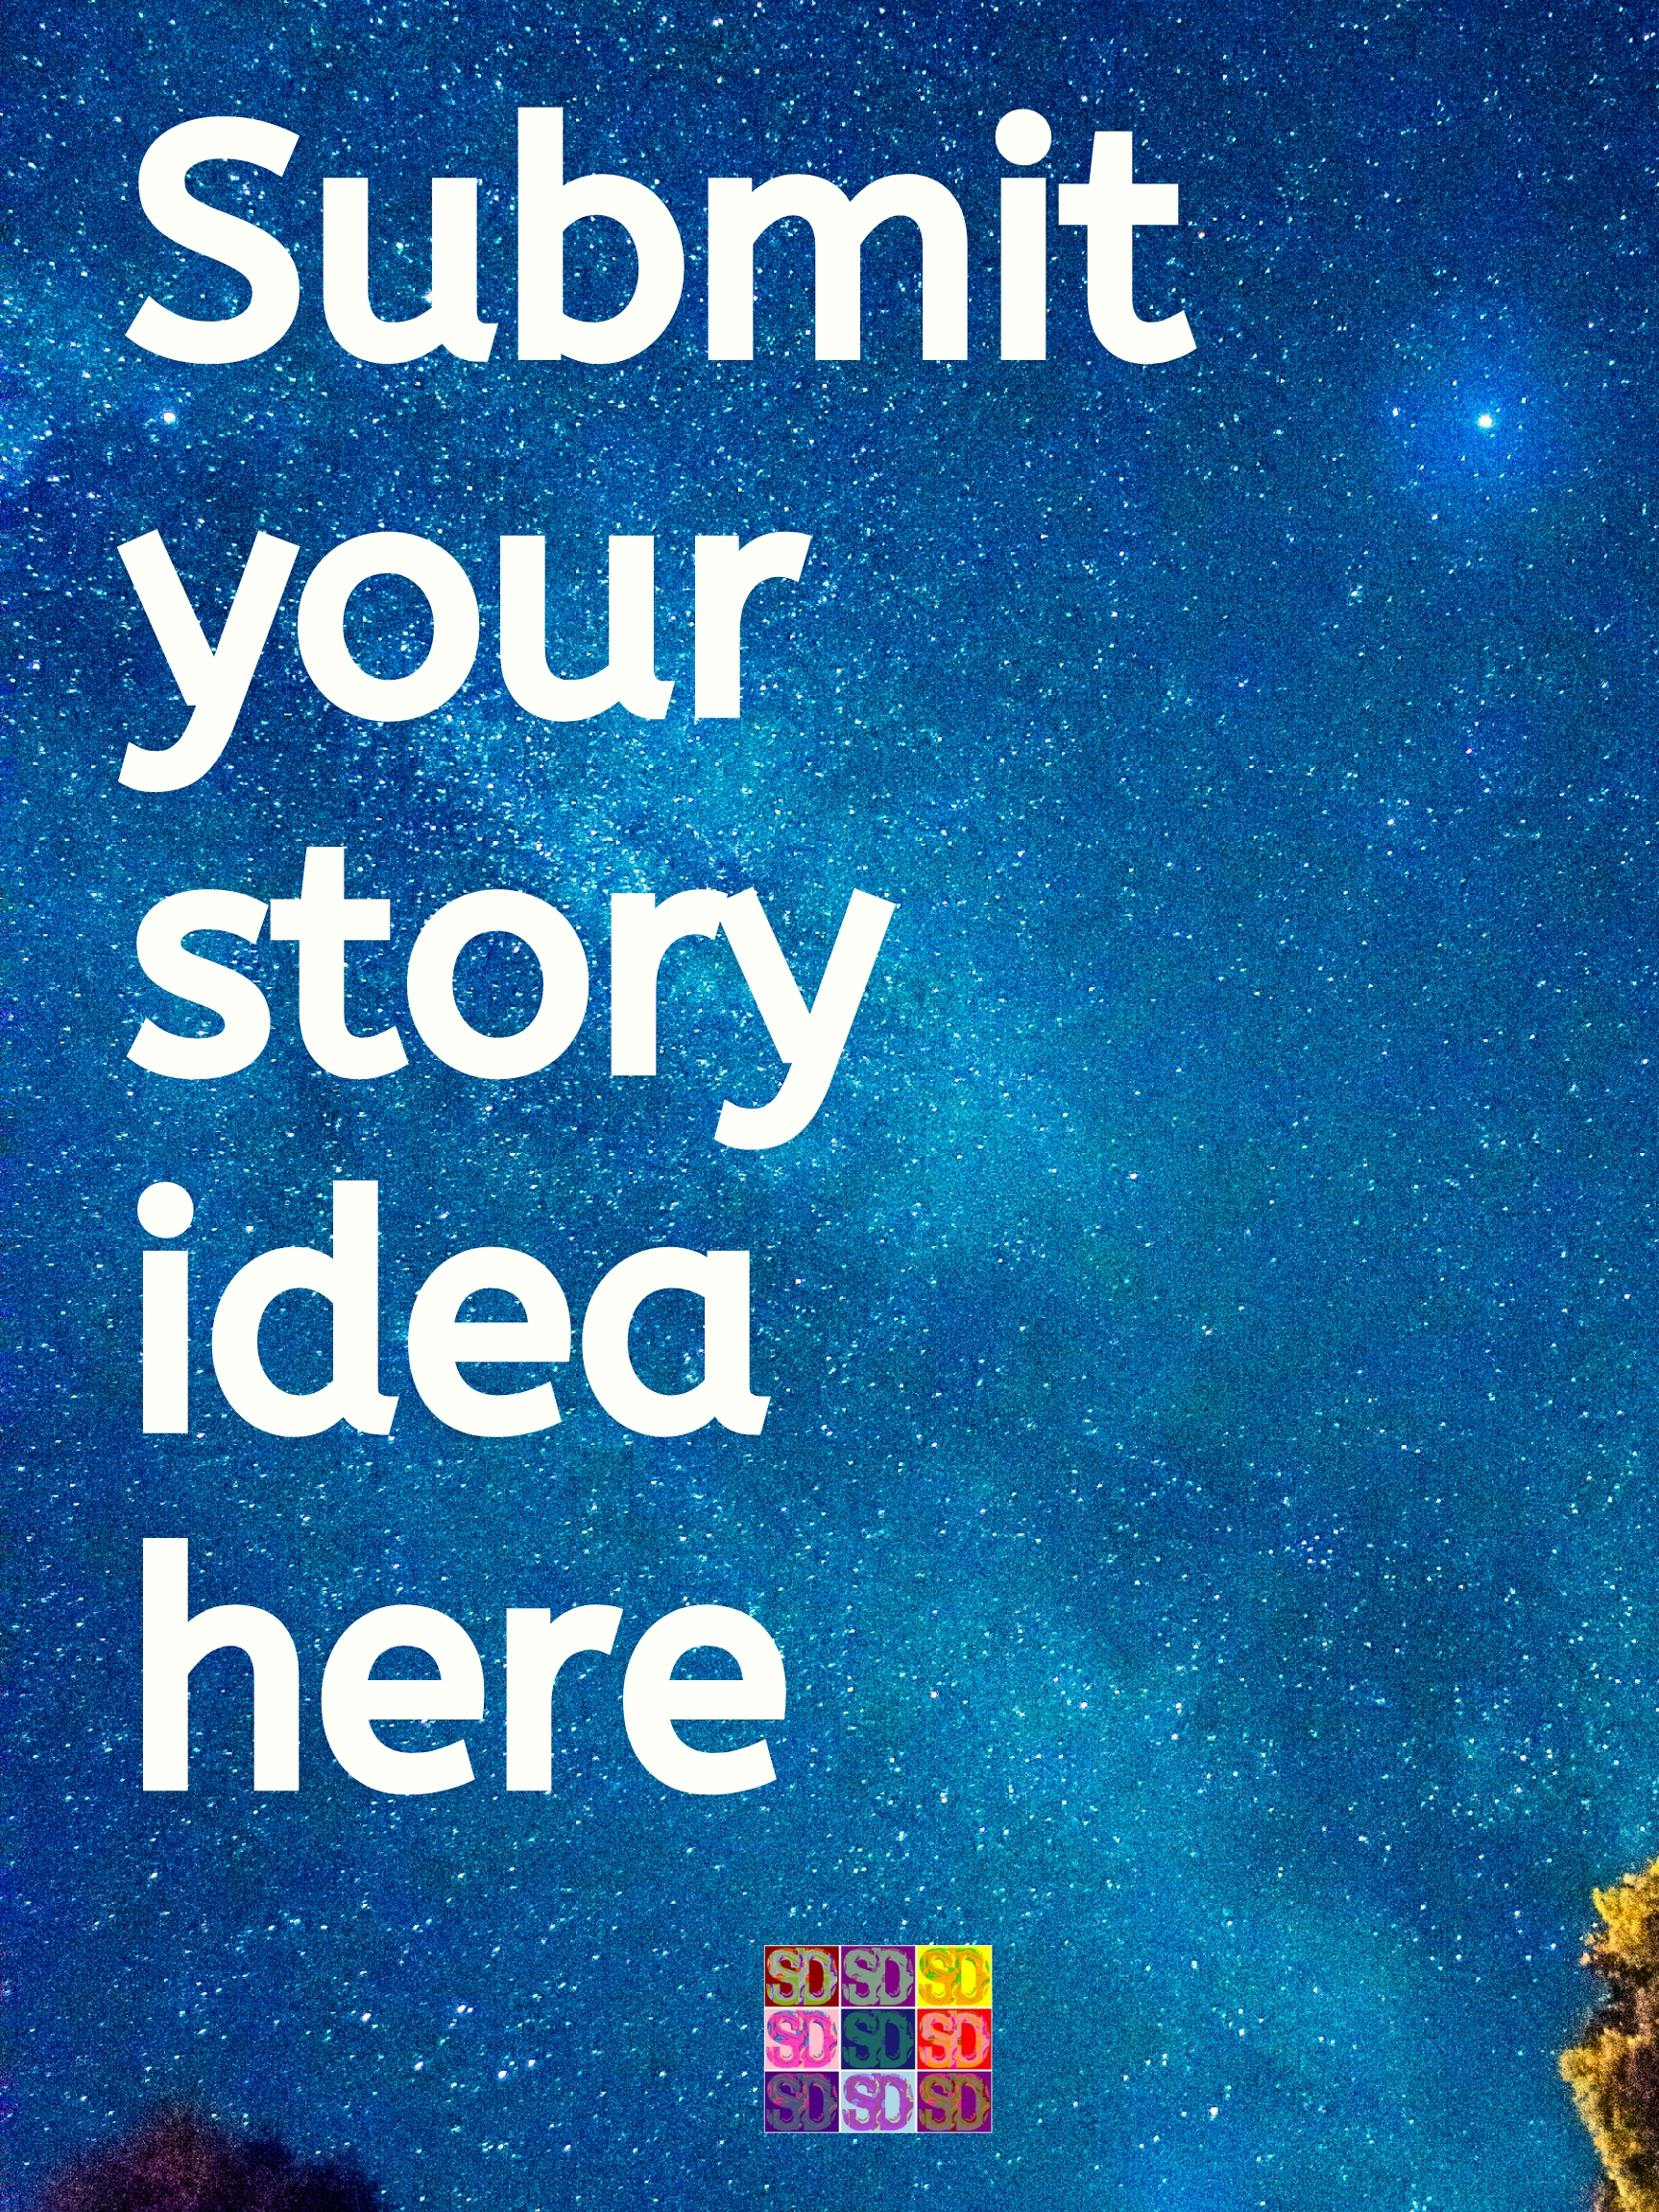 Submit a story idea to Sheryl Dubois